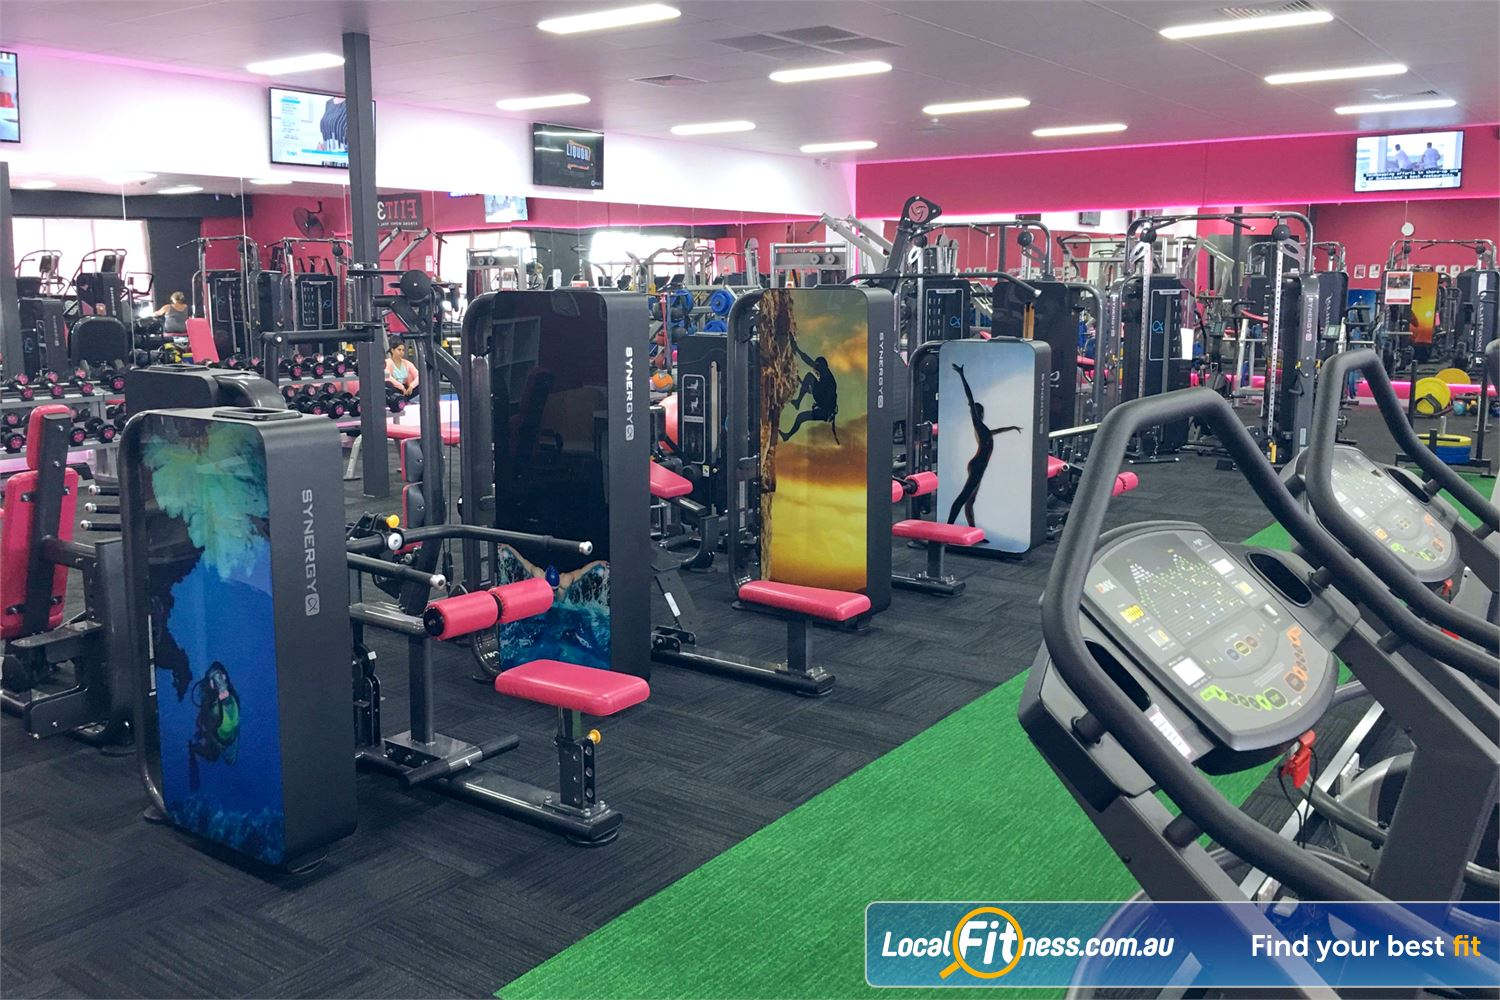 Fernwood Fitness Near Robina Town Centre At Fernwood Robina, we help create strong and healthy women.